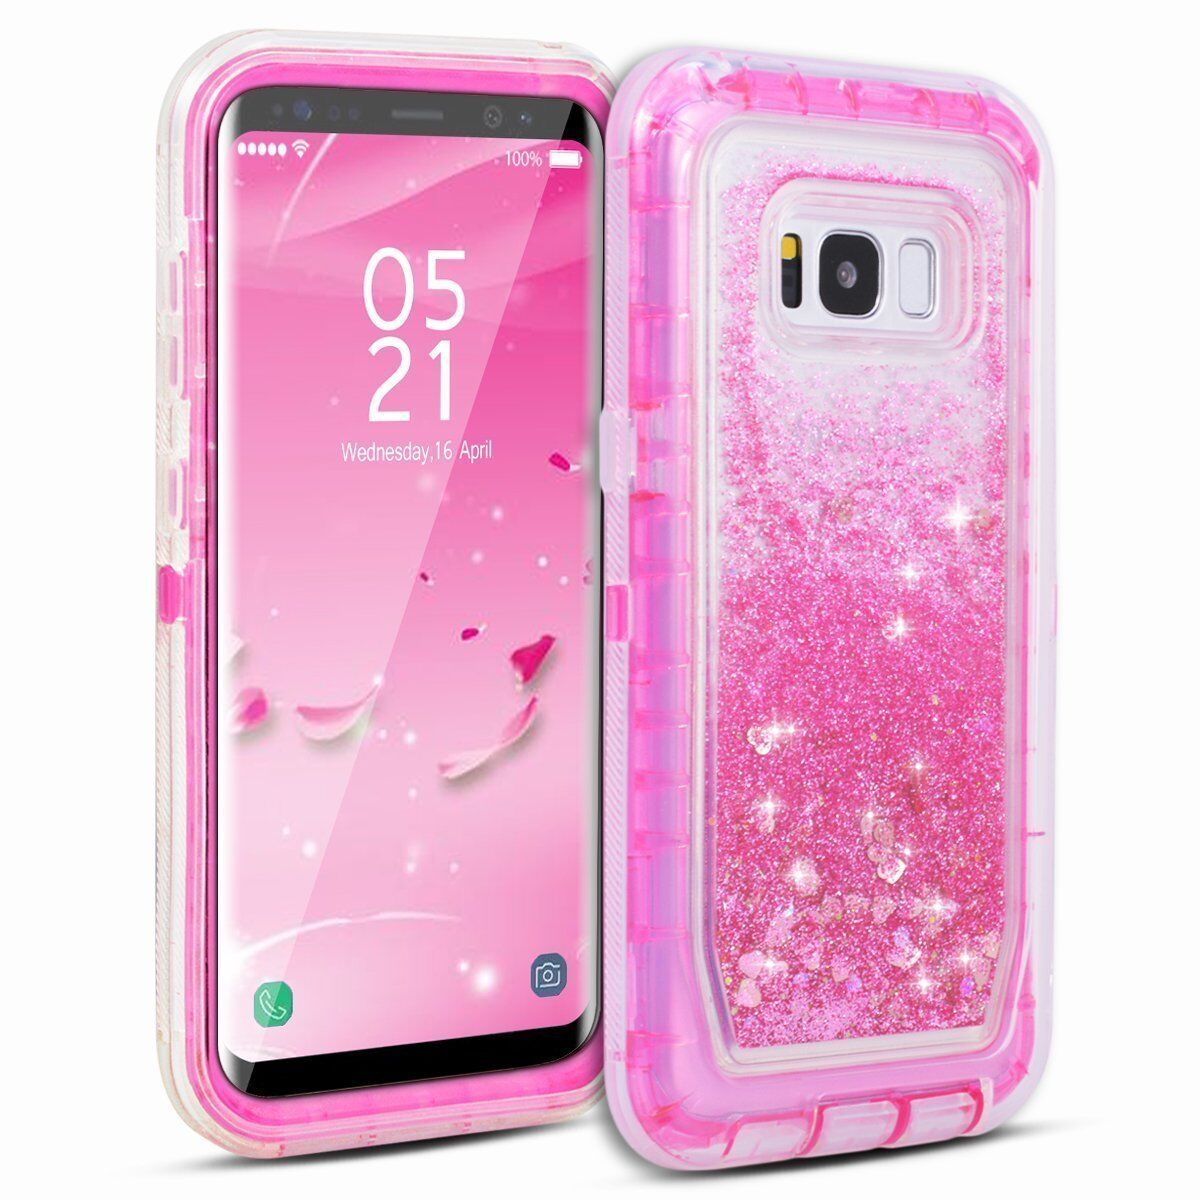 Galaxy S 9 8 7 Plus Edge Note 8 Liquid Glitter-Defender Case Clip Fits Otterbox